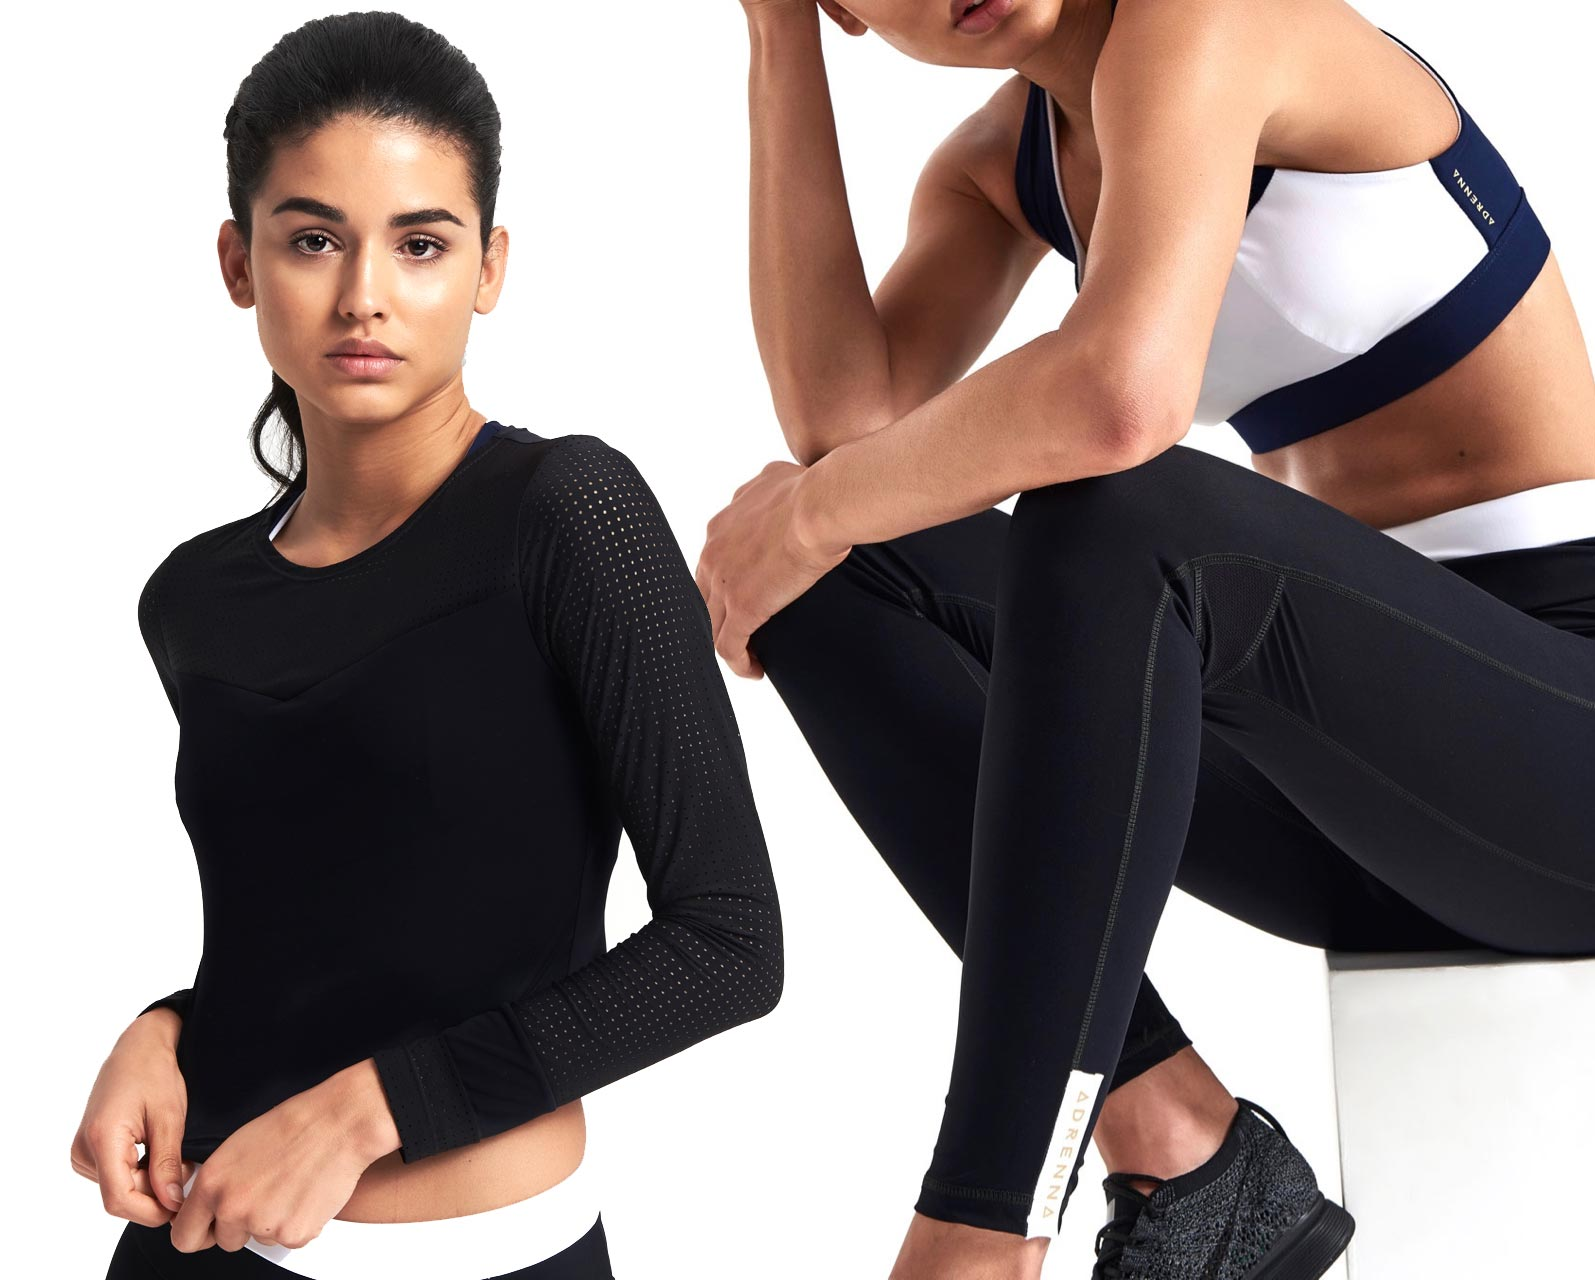 Adrenna Launches Activewear With Women At Its Heart 7